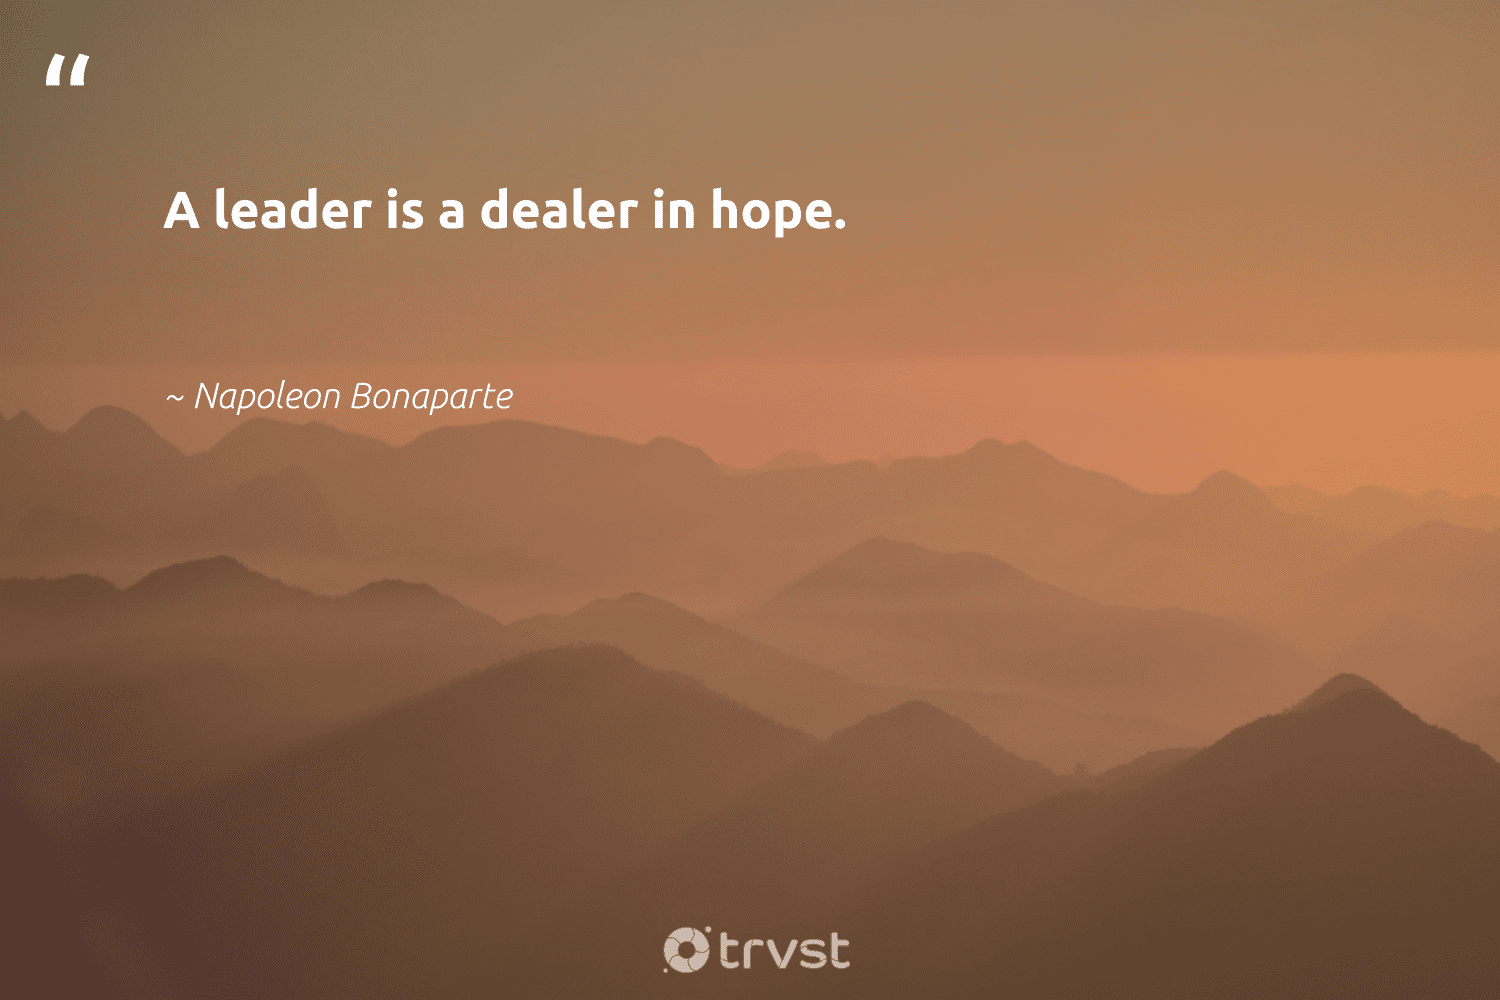 """""""A leader is a dealer in hope.""""  - Napoleon Bonaparte #trvst #quotes #hope #begreat #gogreen #softskills #beinspired #nevergiveup #collectiveaction #futureofwork #bethechange #thinkgreen"""